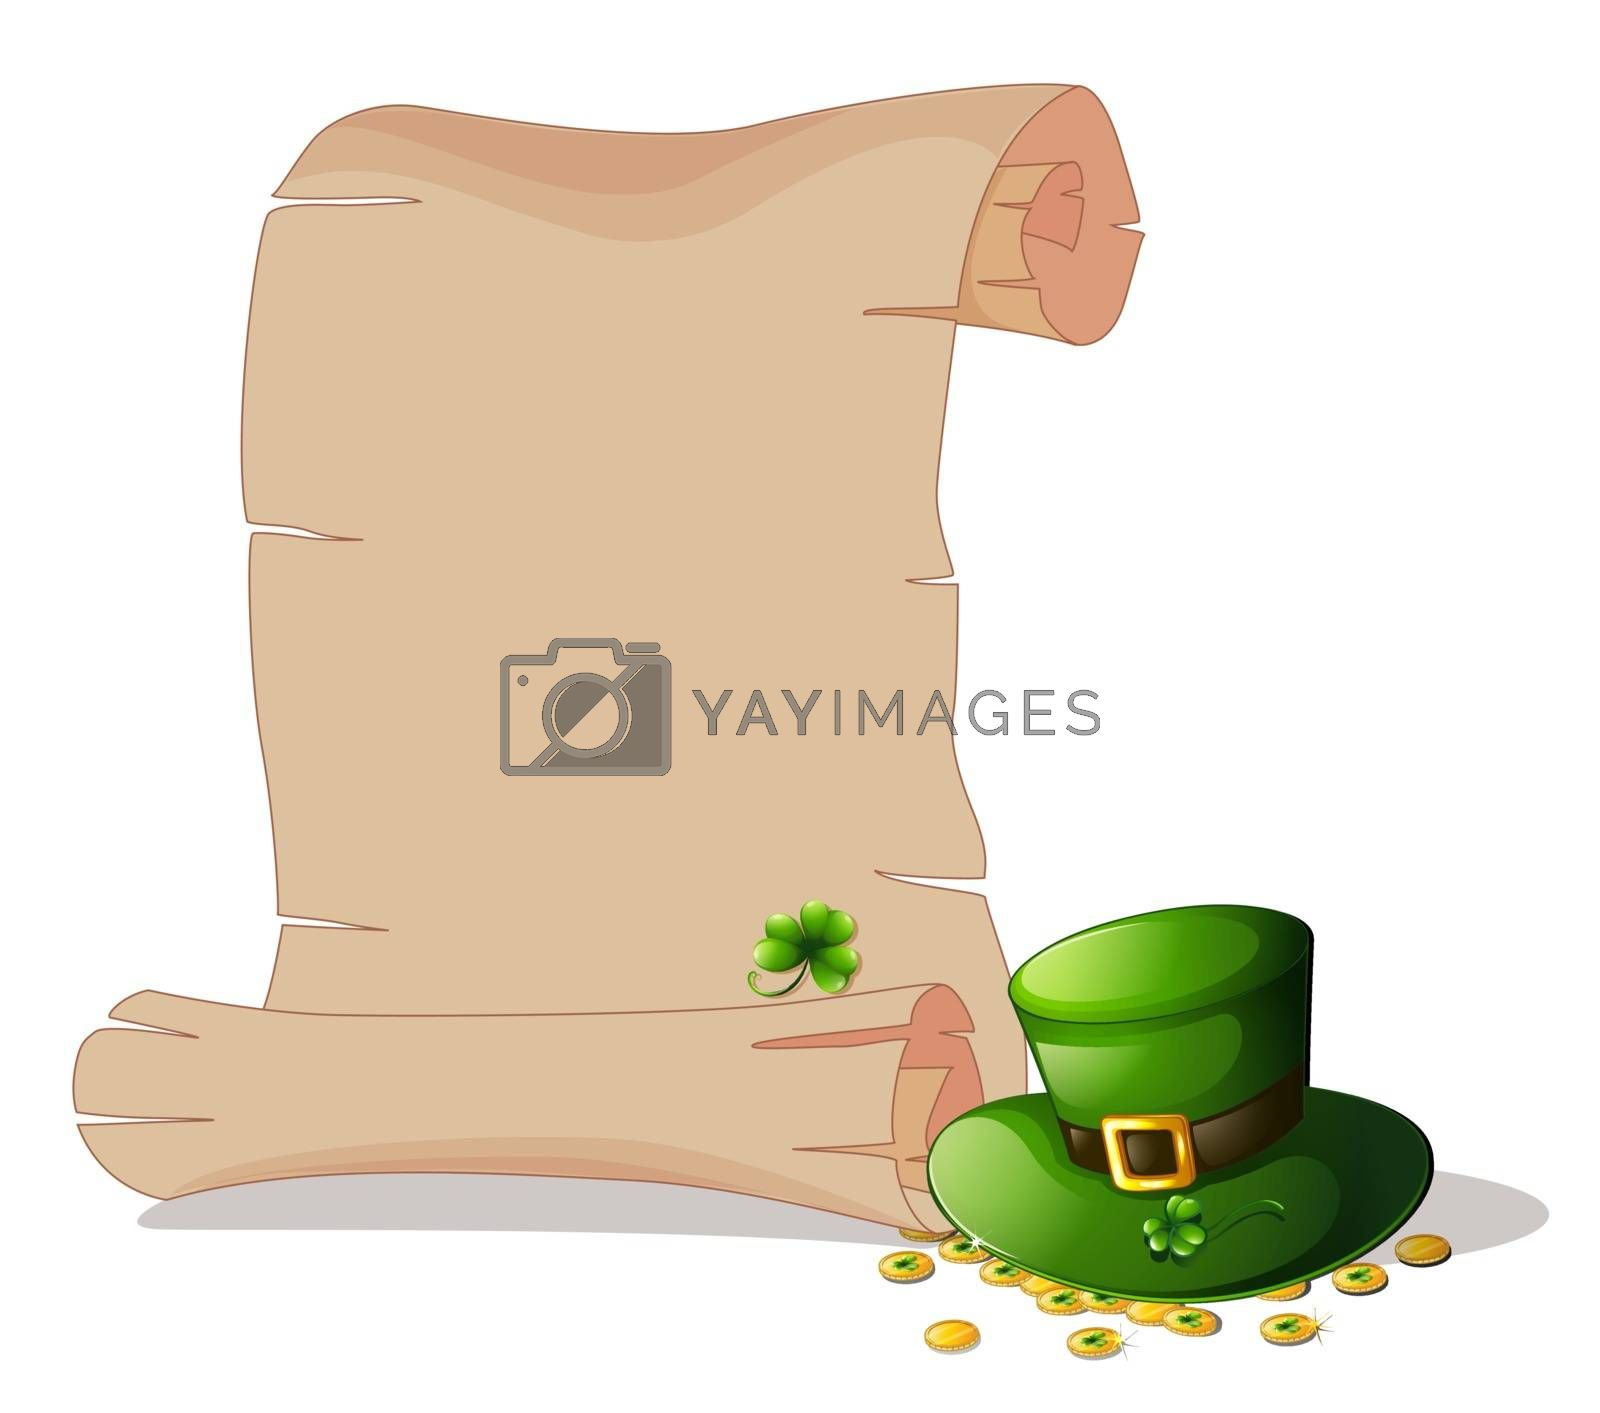 Illustration of an empty space beside a green hat and tokens on a white background